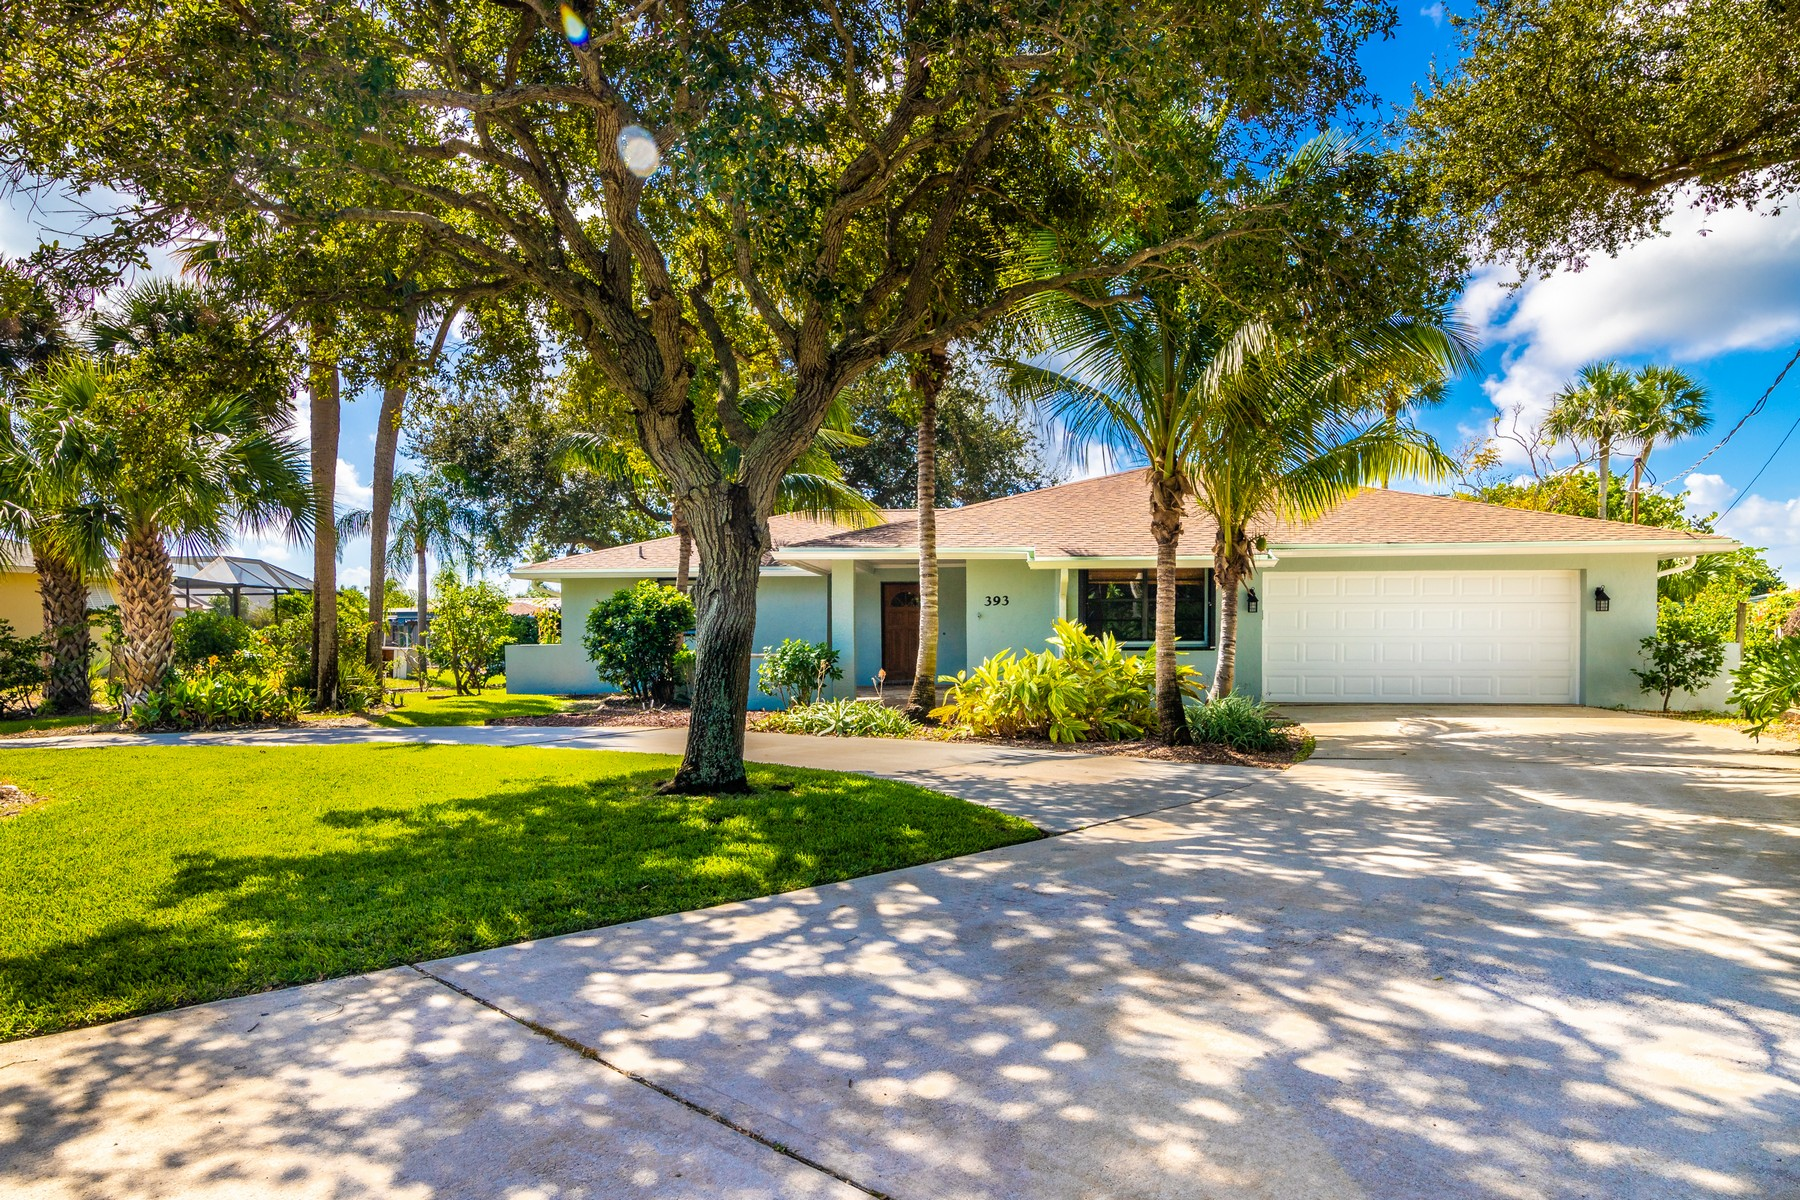 Charming Canal Front Home with Airy, Open Layout 393 Nikomas Way Melbourne Beach, Florida 32951 Hoa Kỳ